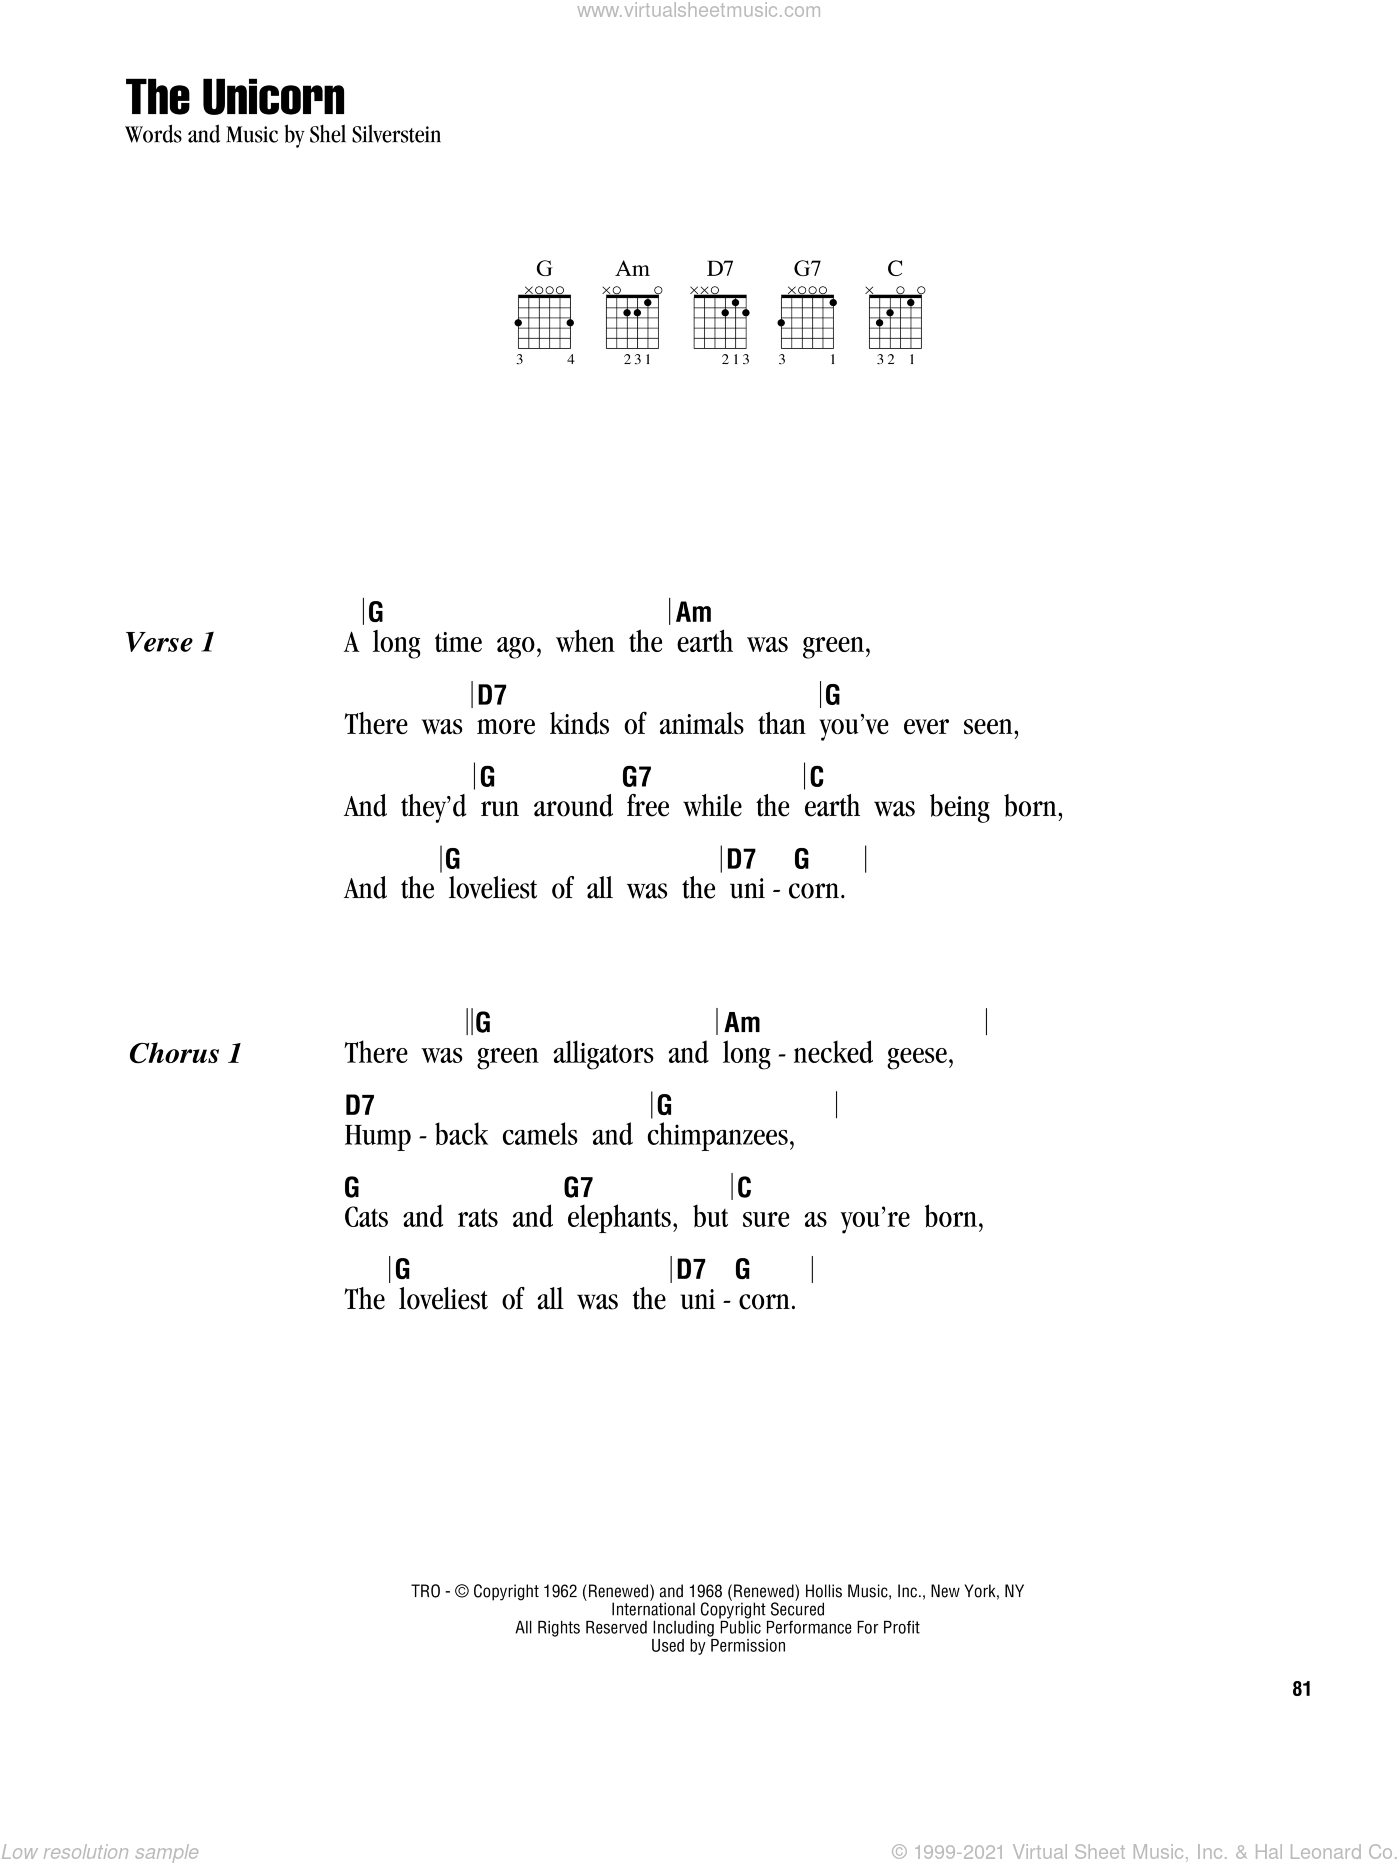 The Unicorn sheet music for guitar (chords) by Irish Rovers and Shel Silverstein, intermediate skill level